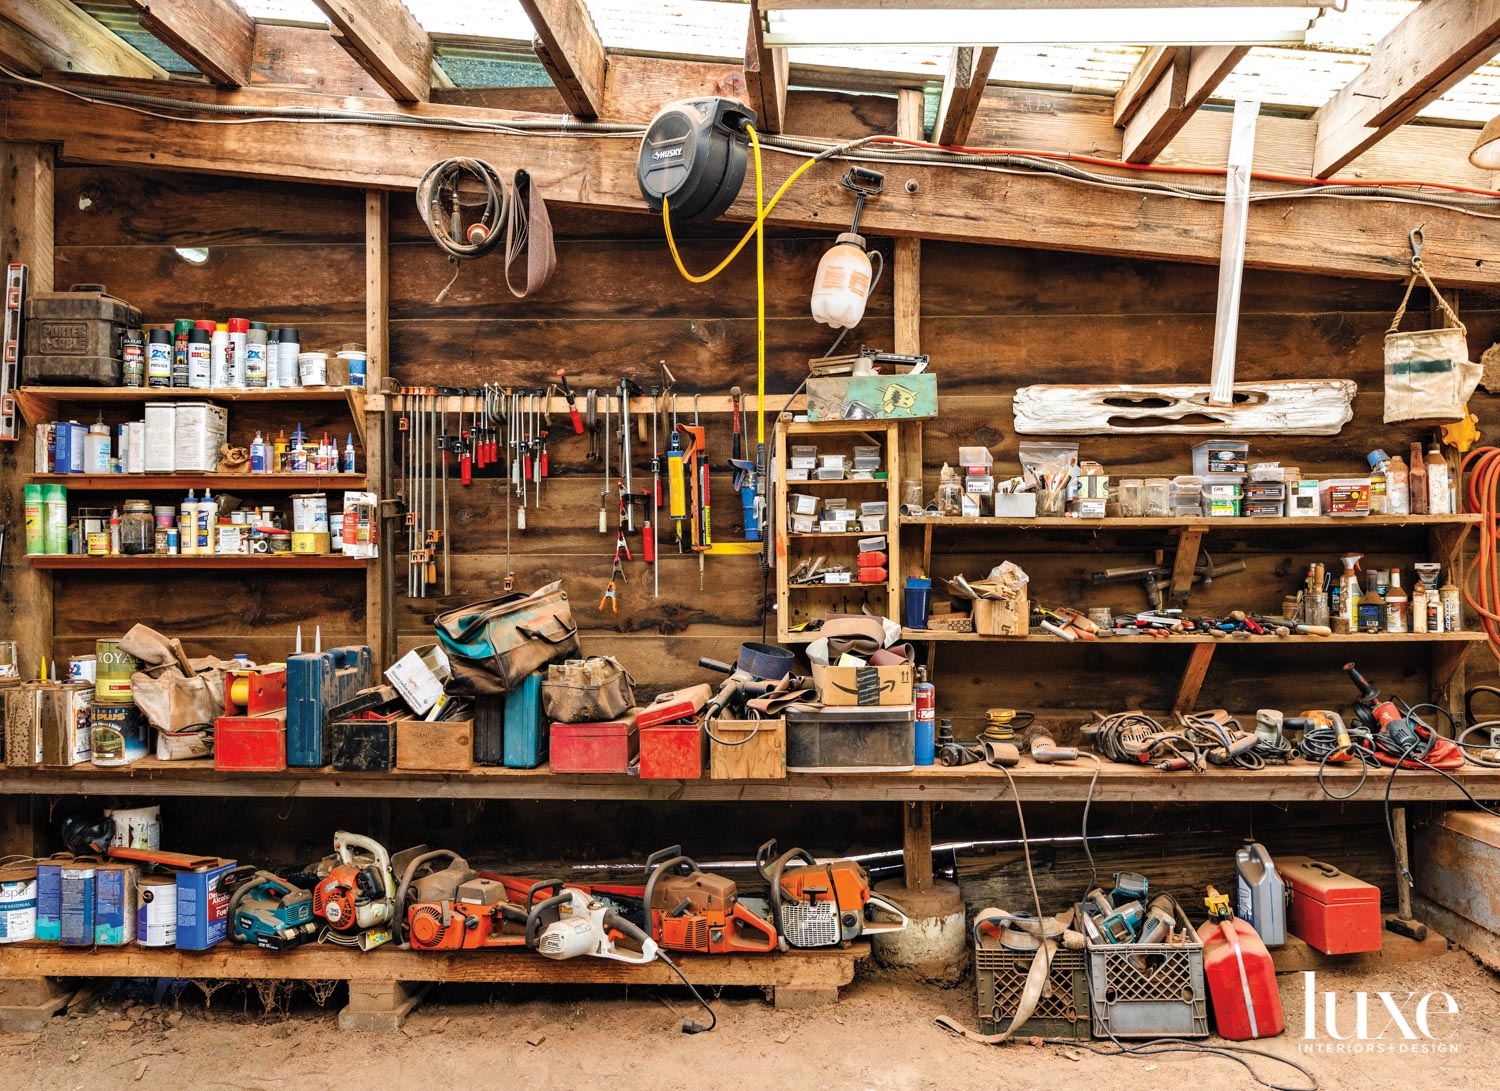 A workbench is filled with tools.